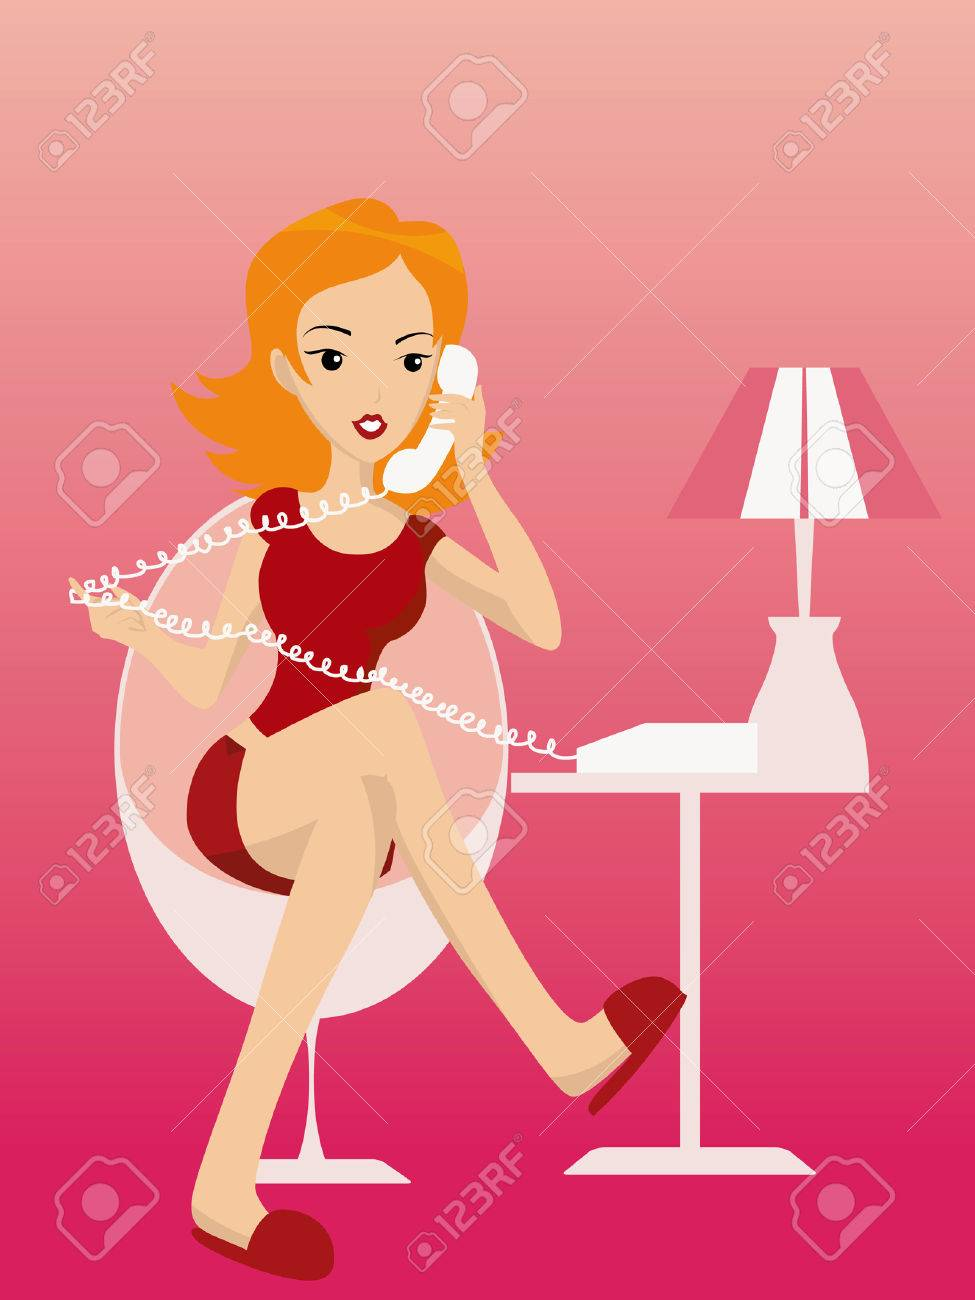 Illustration of a Girl talking on the Phone Stock Vector - 2118301